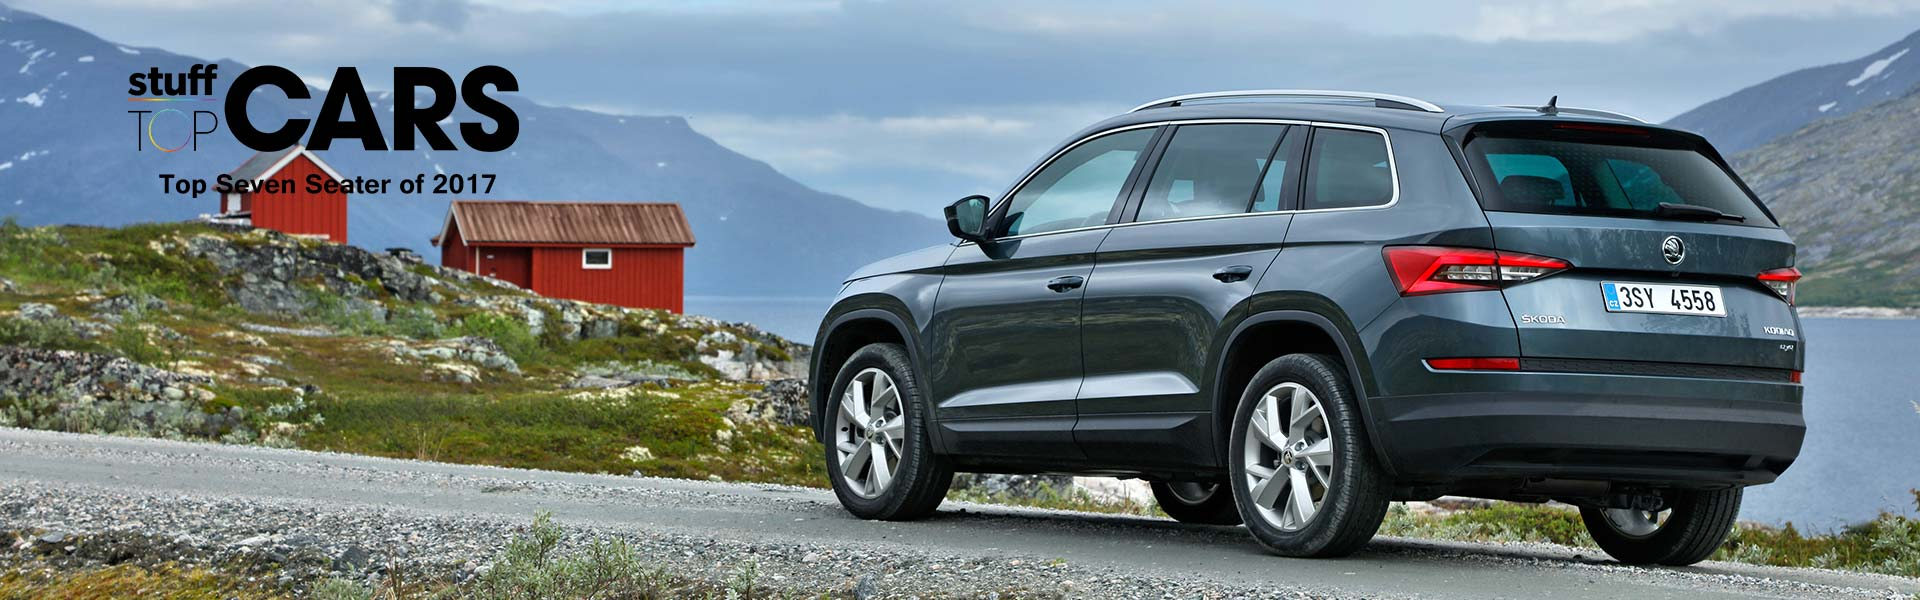 Kodiaq Best 7-Seater Award